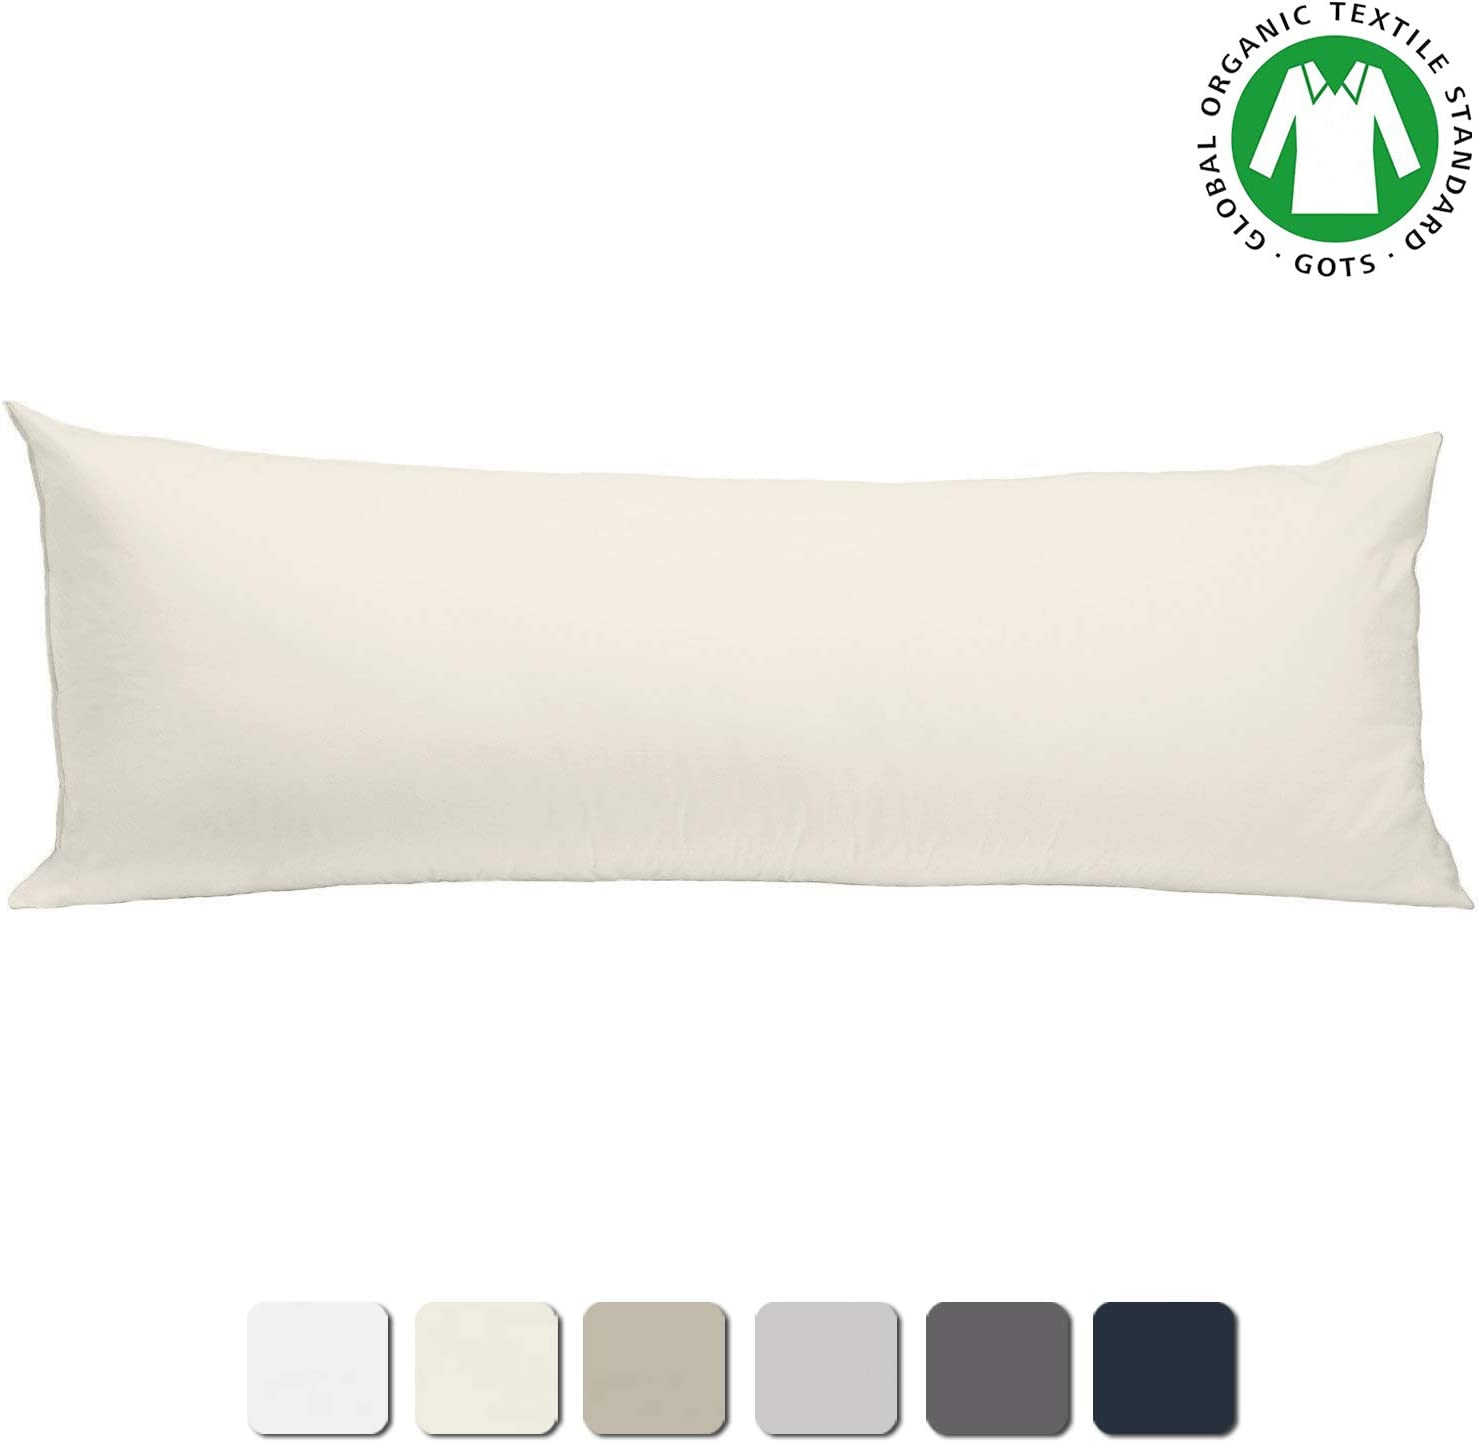 """BIOWEAVES 100% Organic Cotton Body Pillow Cover for Body Pillowcases 300 Thread Count Soft Sateen Weave GOTS Certified with Zipped Closure - 21"""" x 54"""", Natural"""